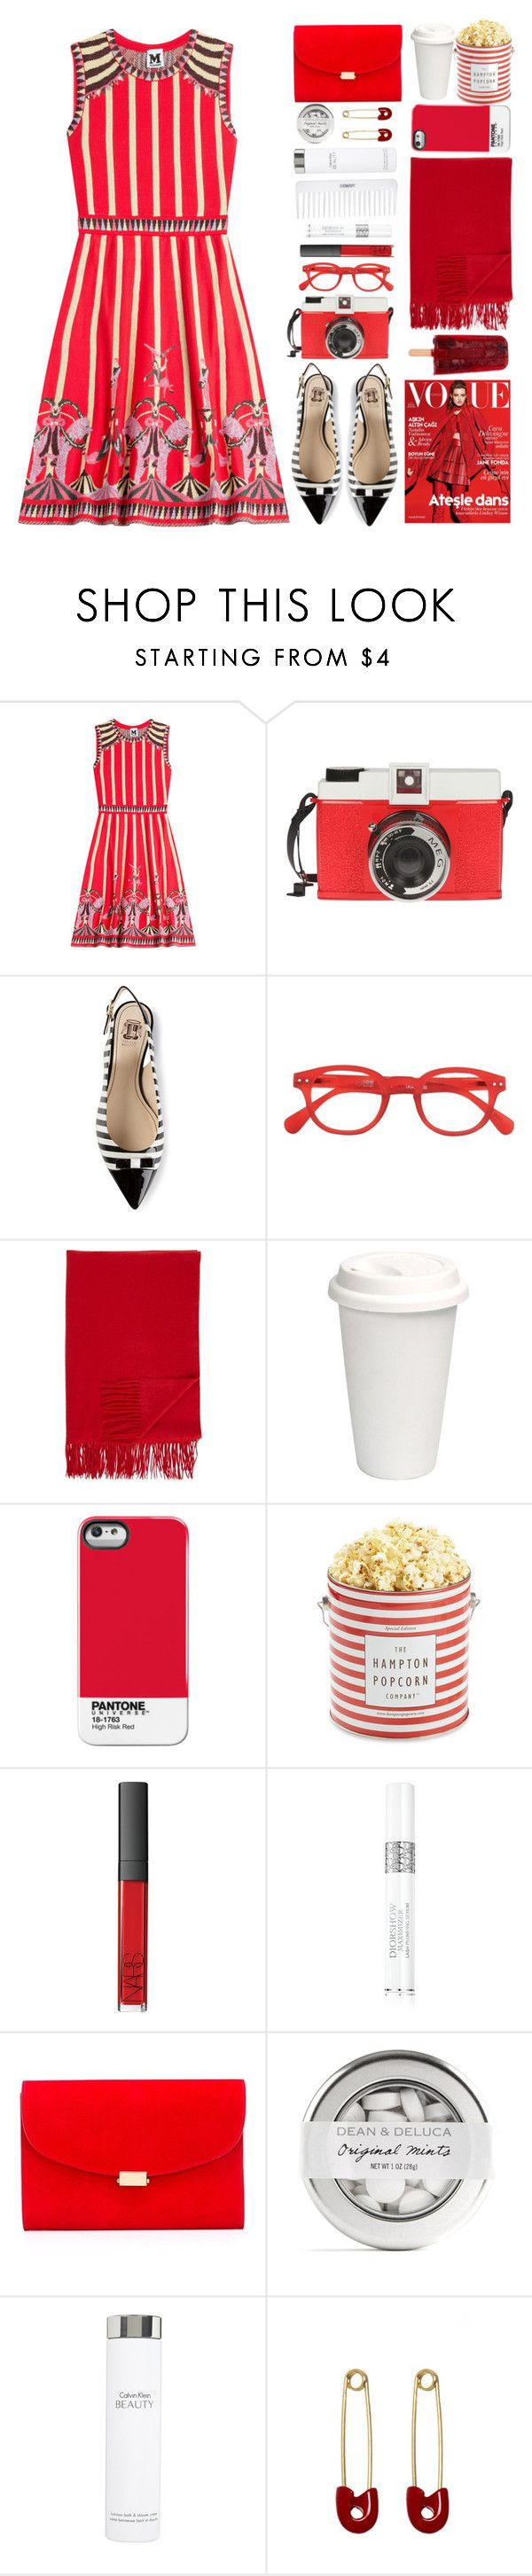 """""""Circus dress"""" by iireneii ❤ liked on Polyvore featuring M Missoni, Edition, Loucos & Santos, See Concept, Barneys New York, The Hampton Popcorn Company, Conair, NARS Cosmetics, Christian Dior and Mansur Gavriel"""